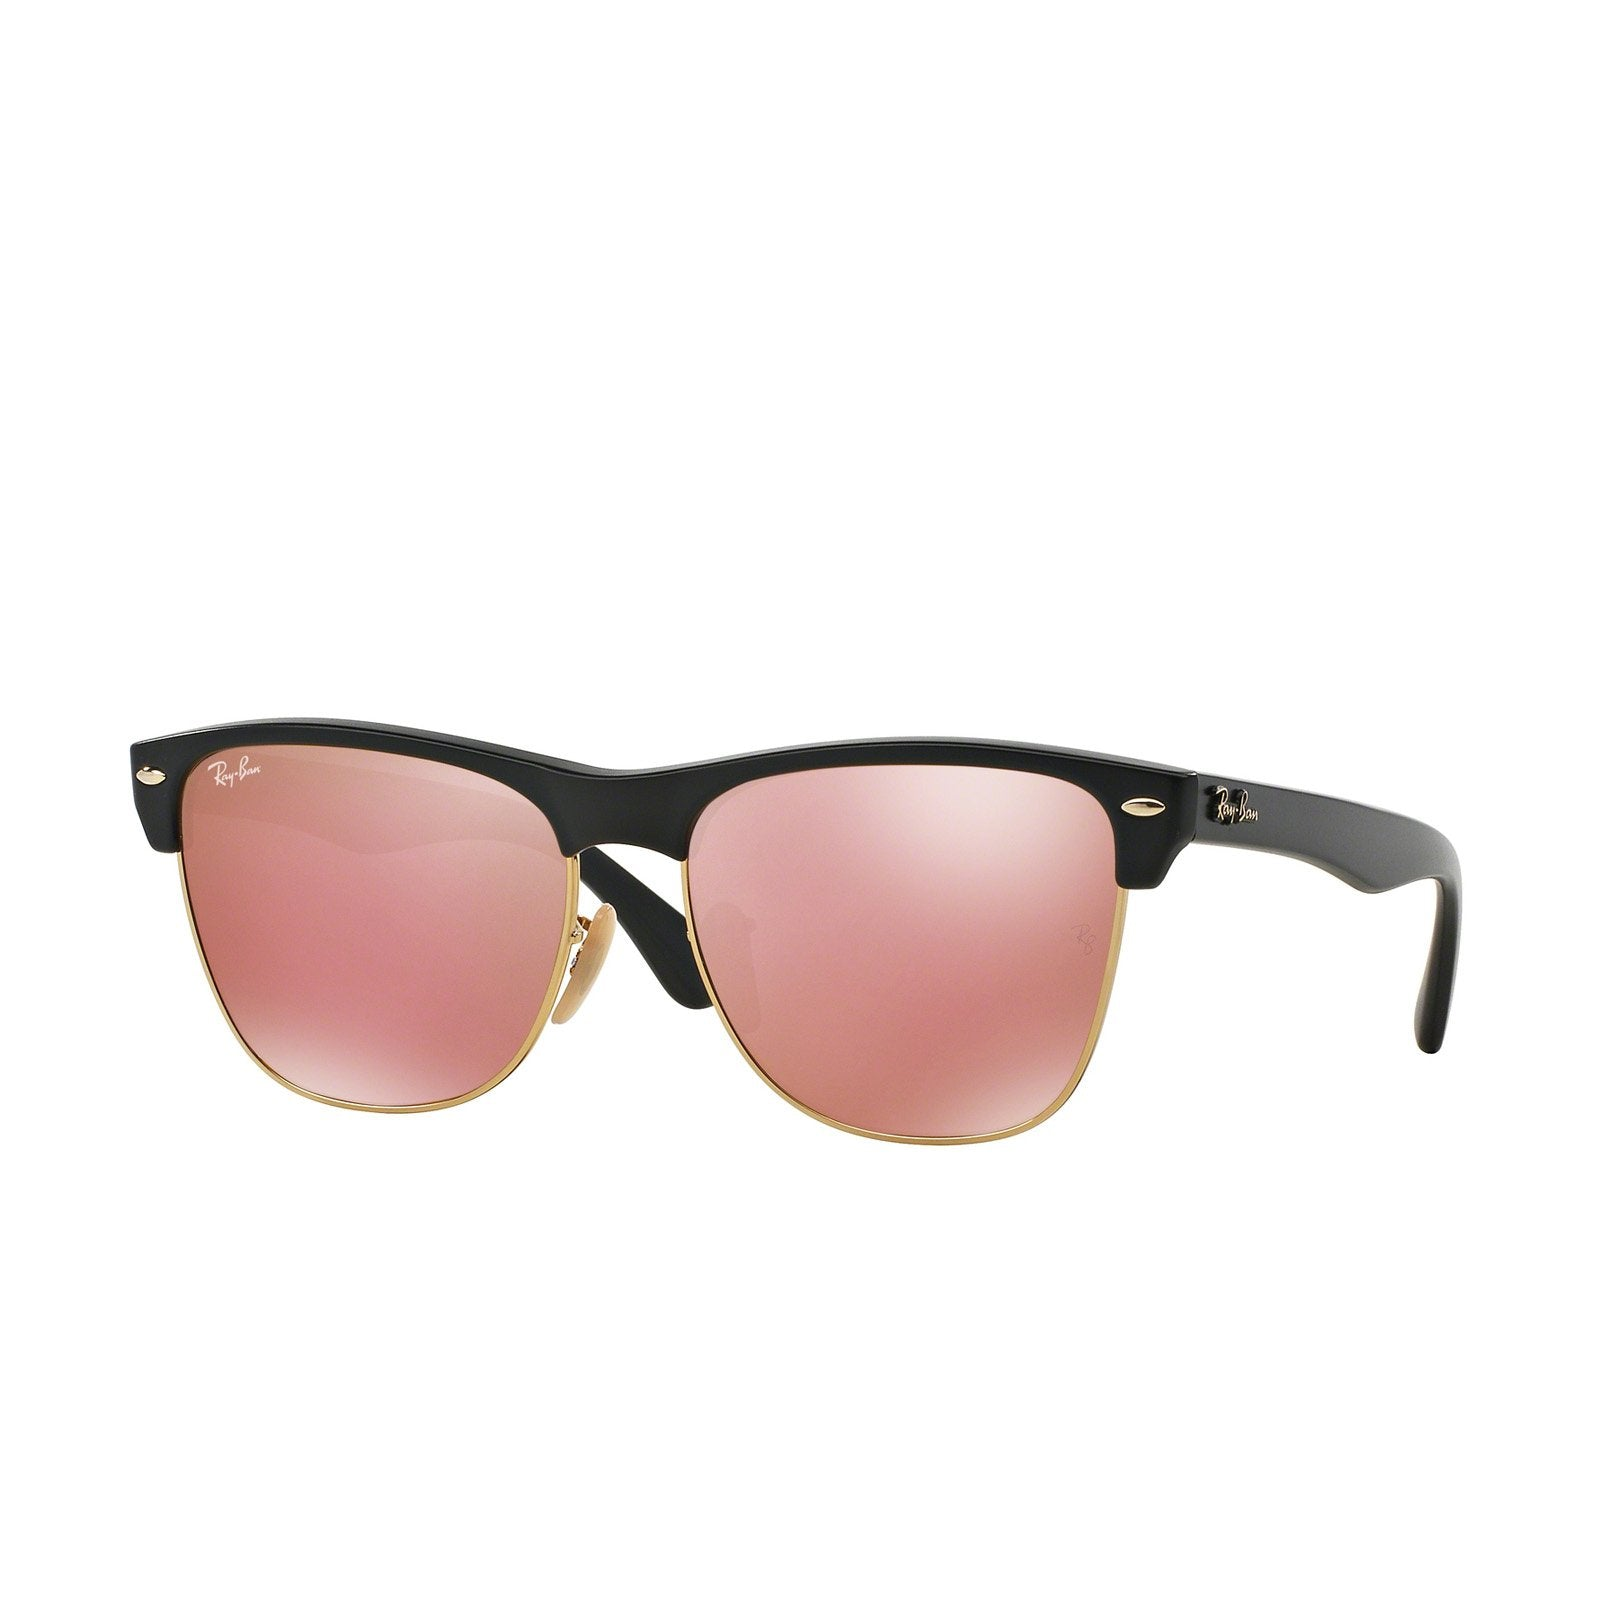 Ray-Ban RB4175 877/Z2 Sunglasses